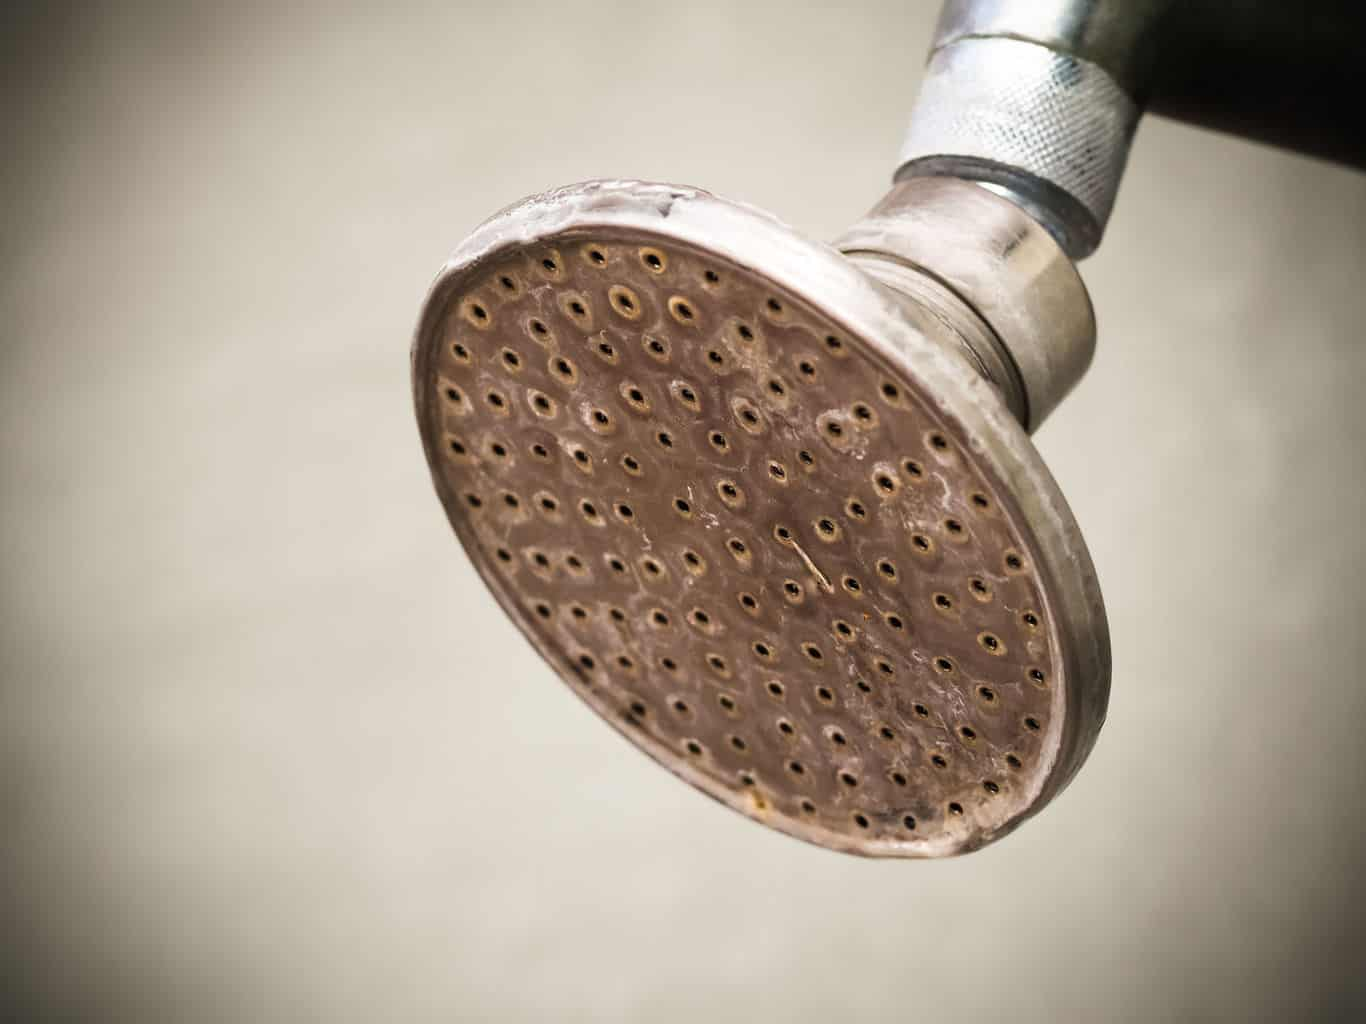 Old and rusty silver shower head